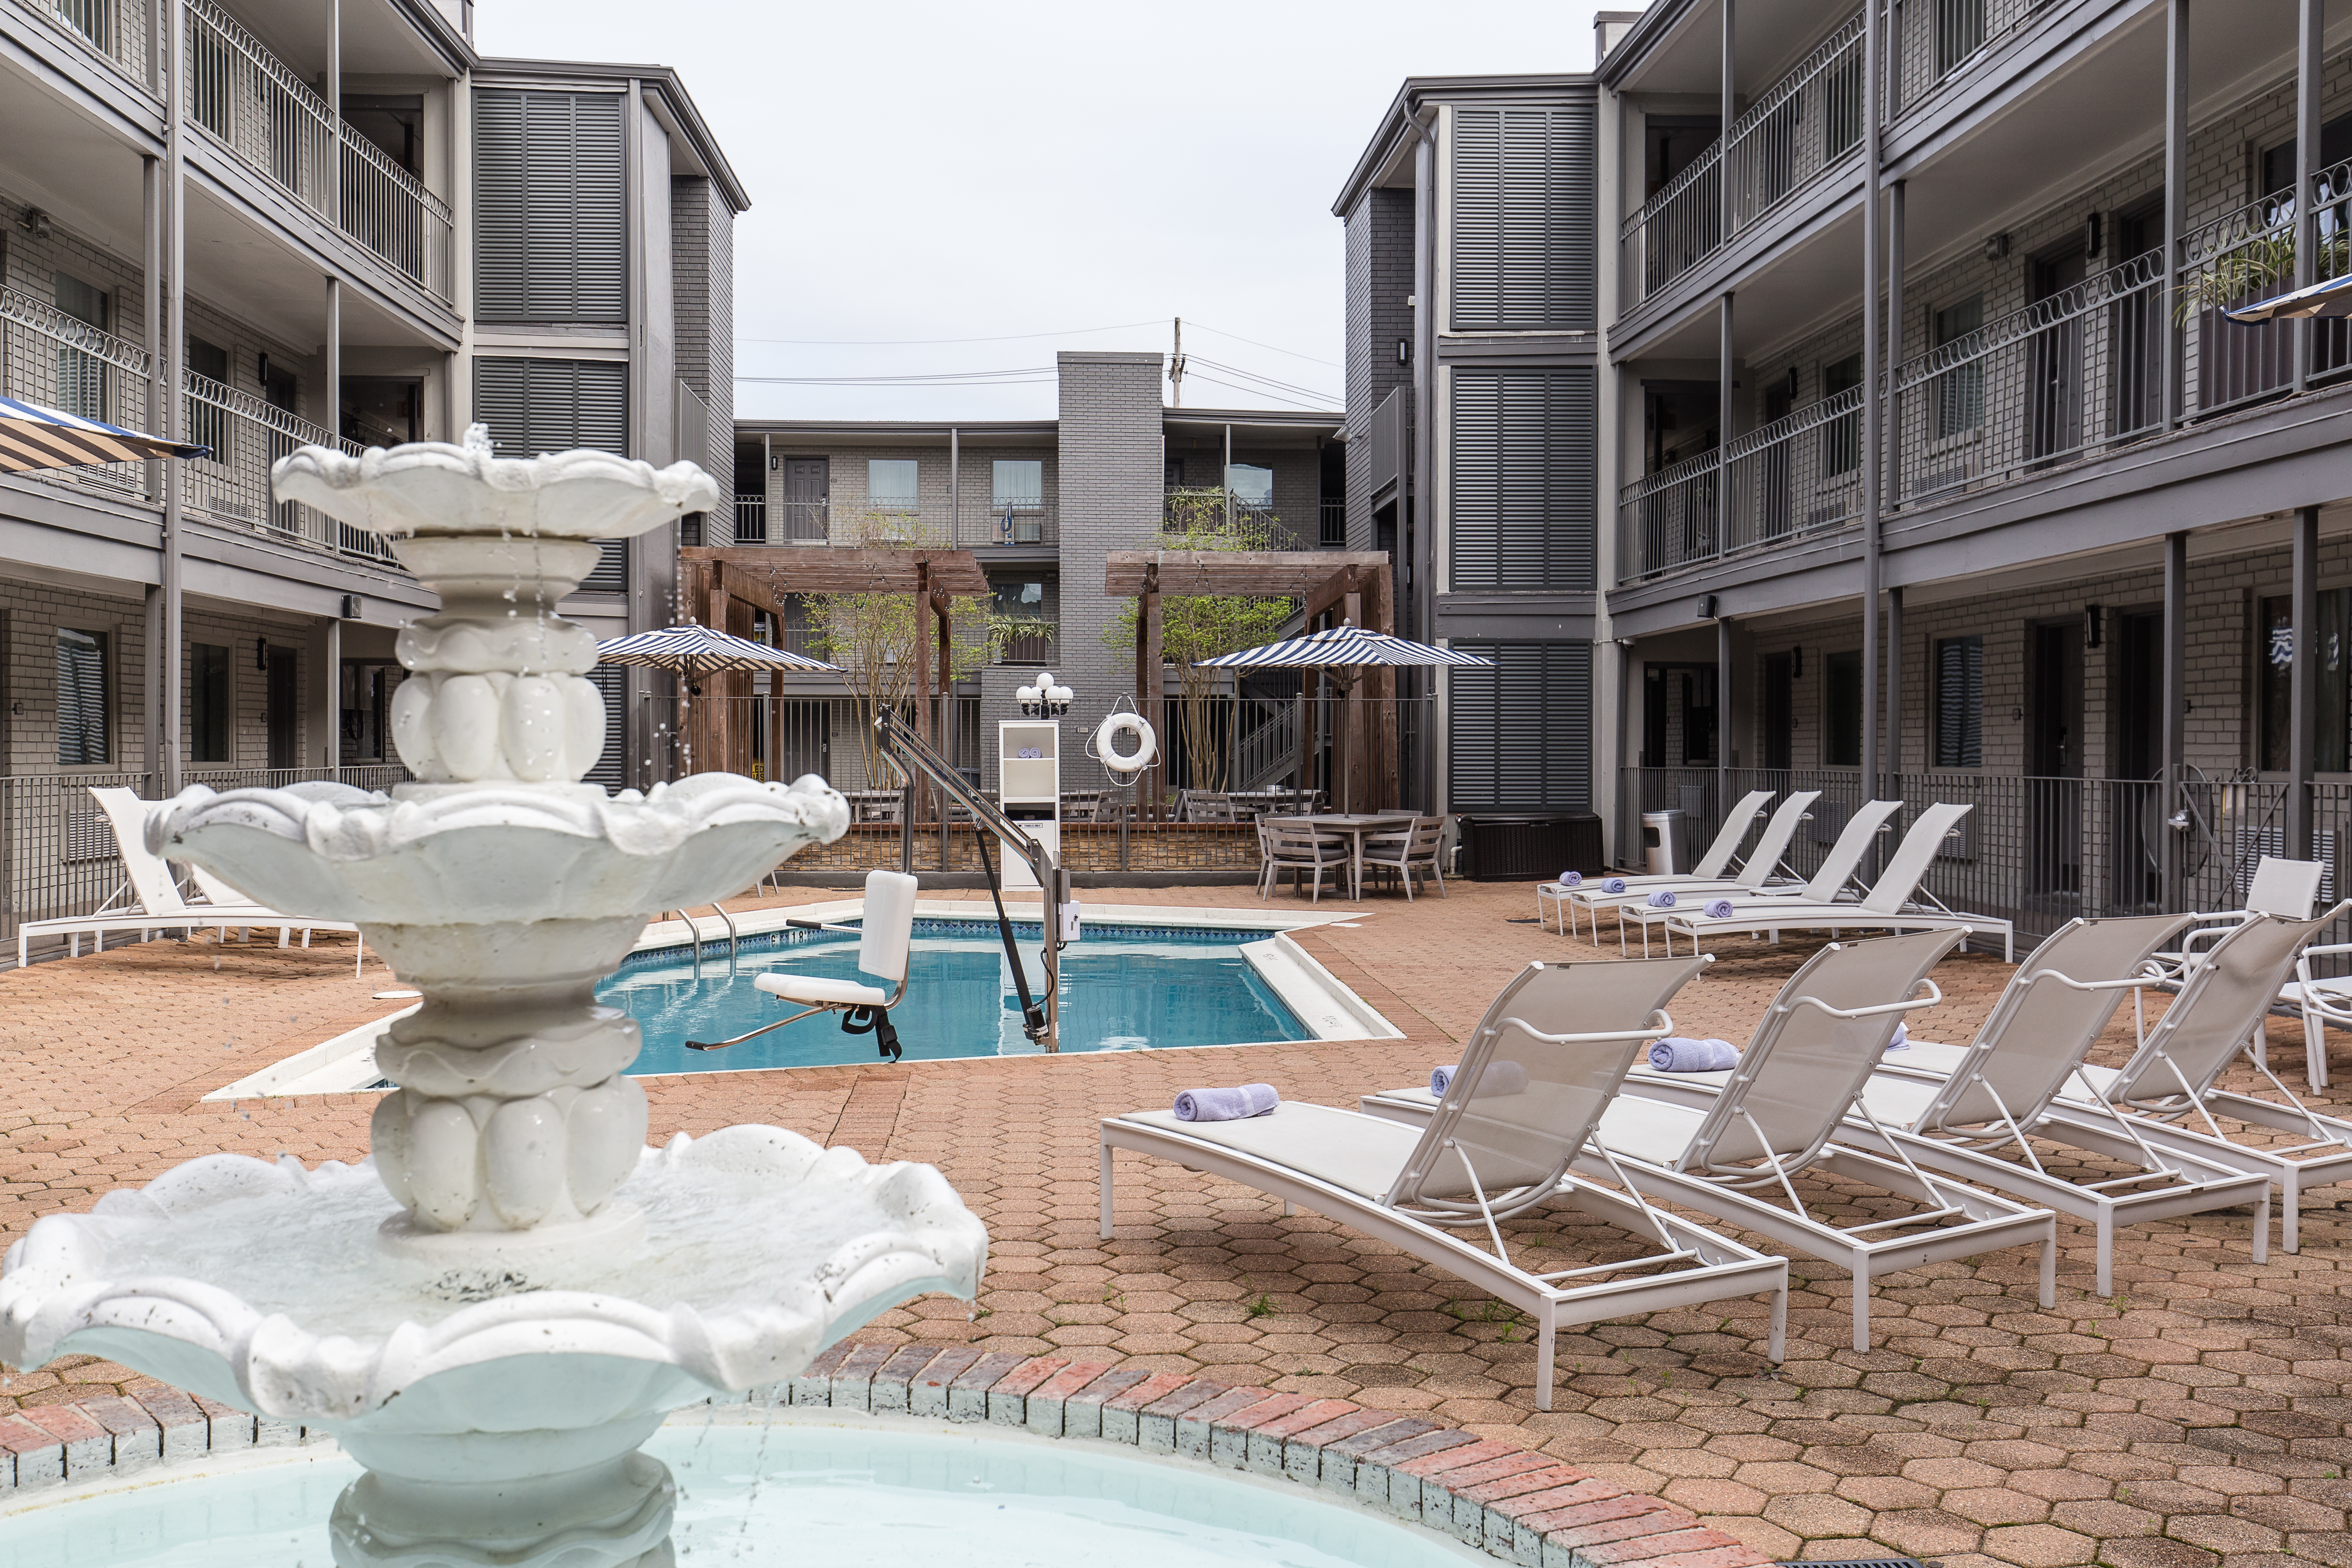 Country Inn & Suites by Radisson, Metairie (New Orleans), LA image 0